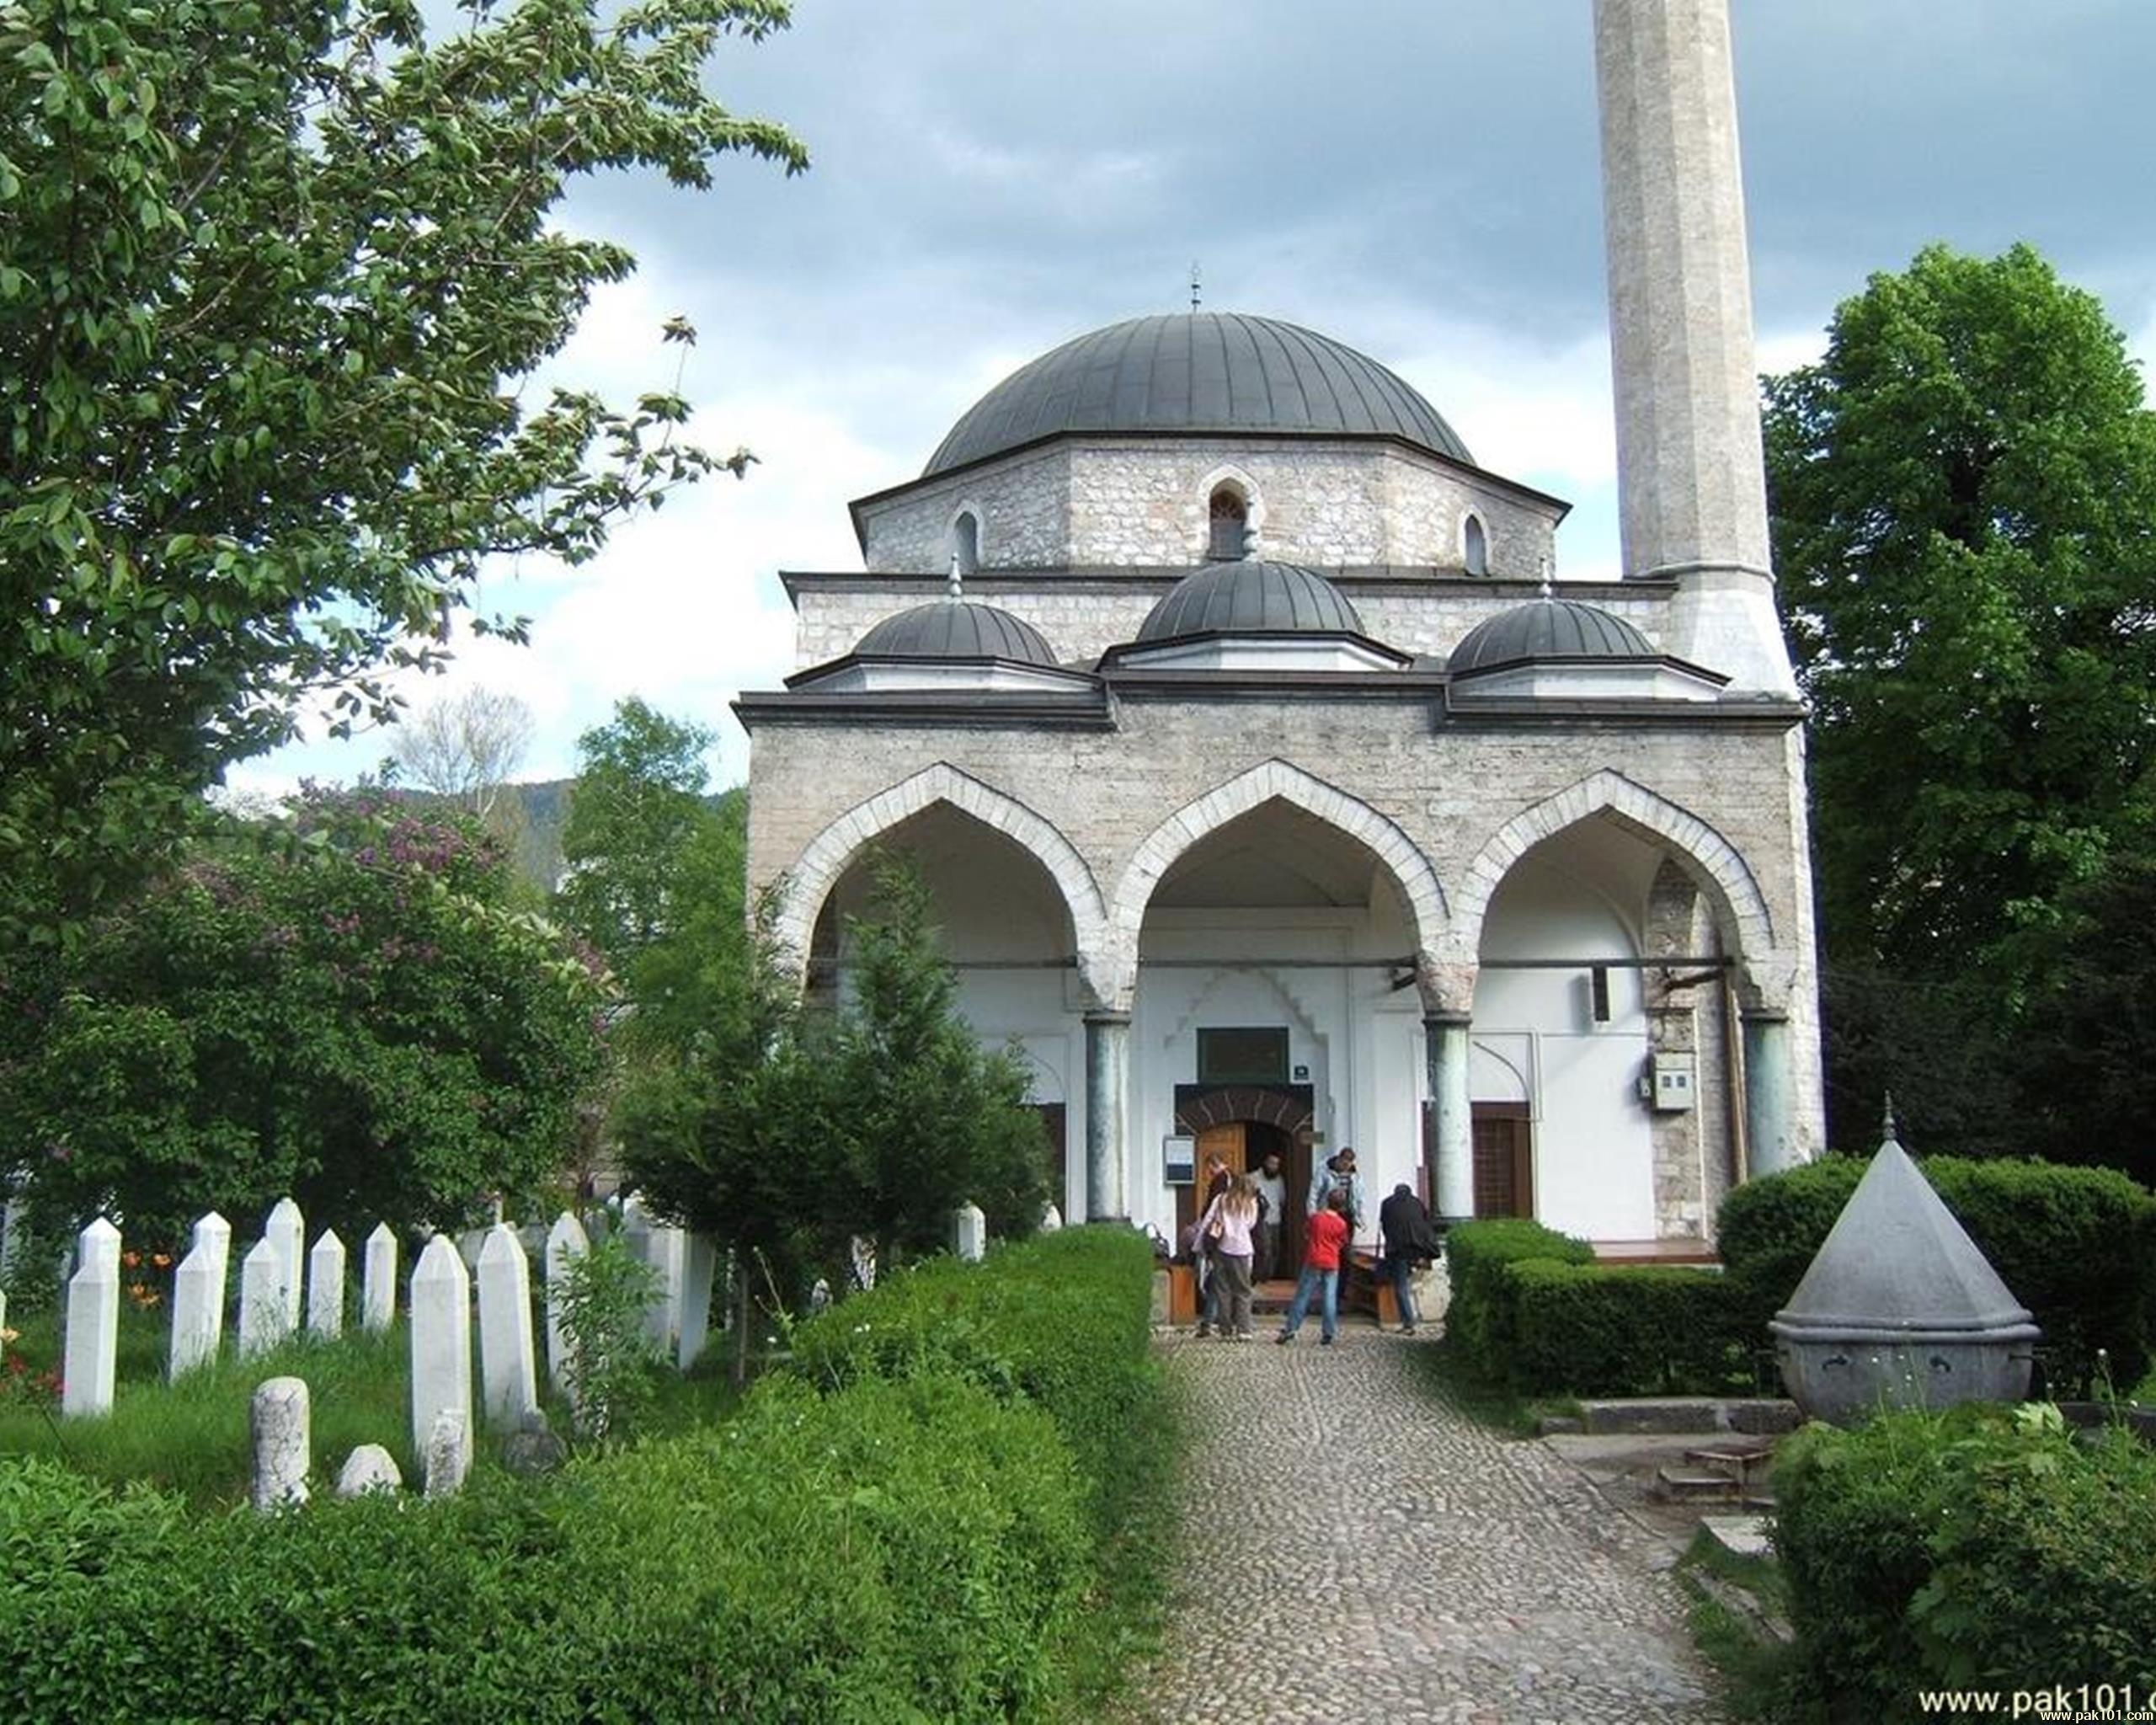 Wallpapers > Islamic > Ali Pasha Mosque in Sarajevo - Bosnia and ...